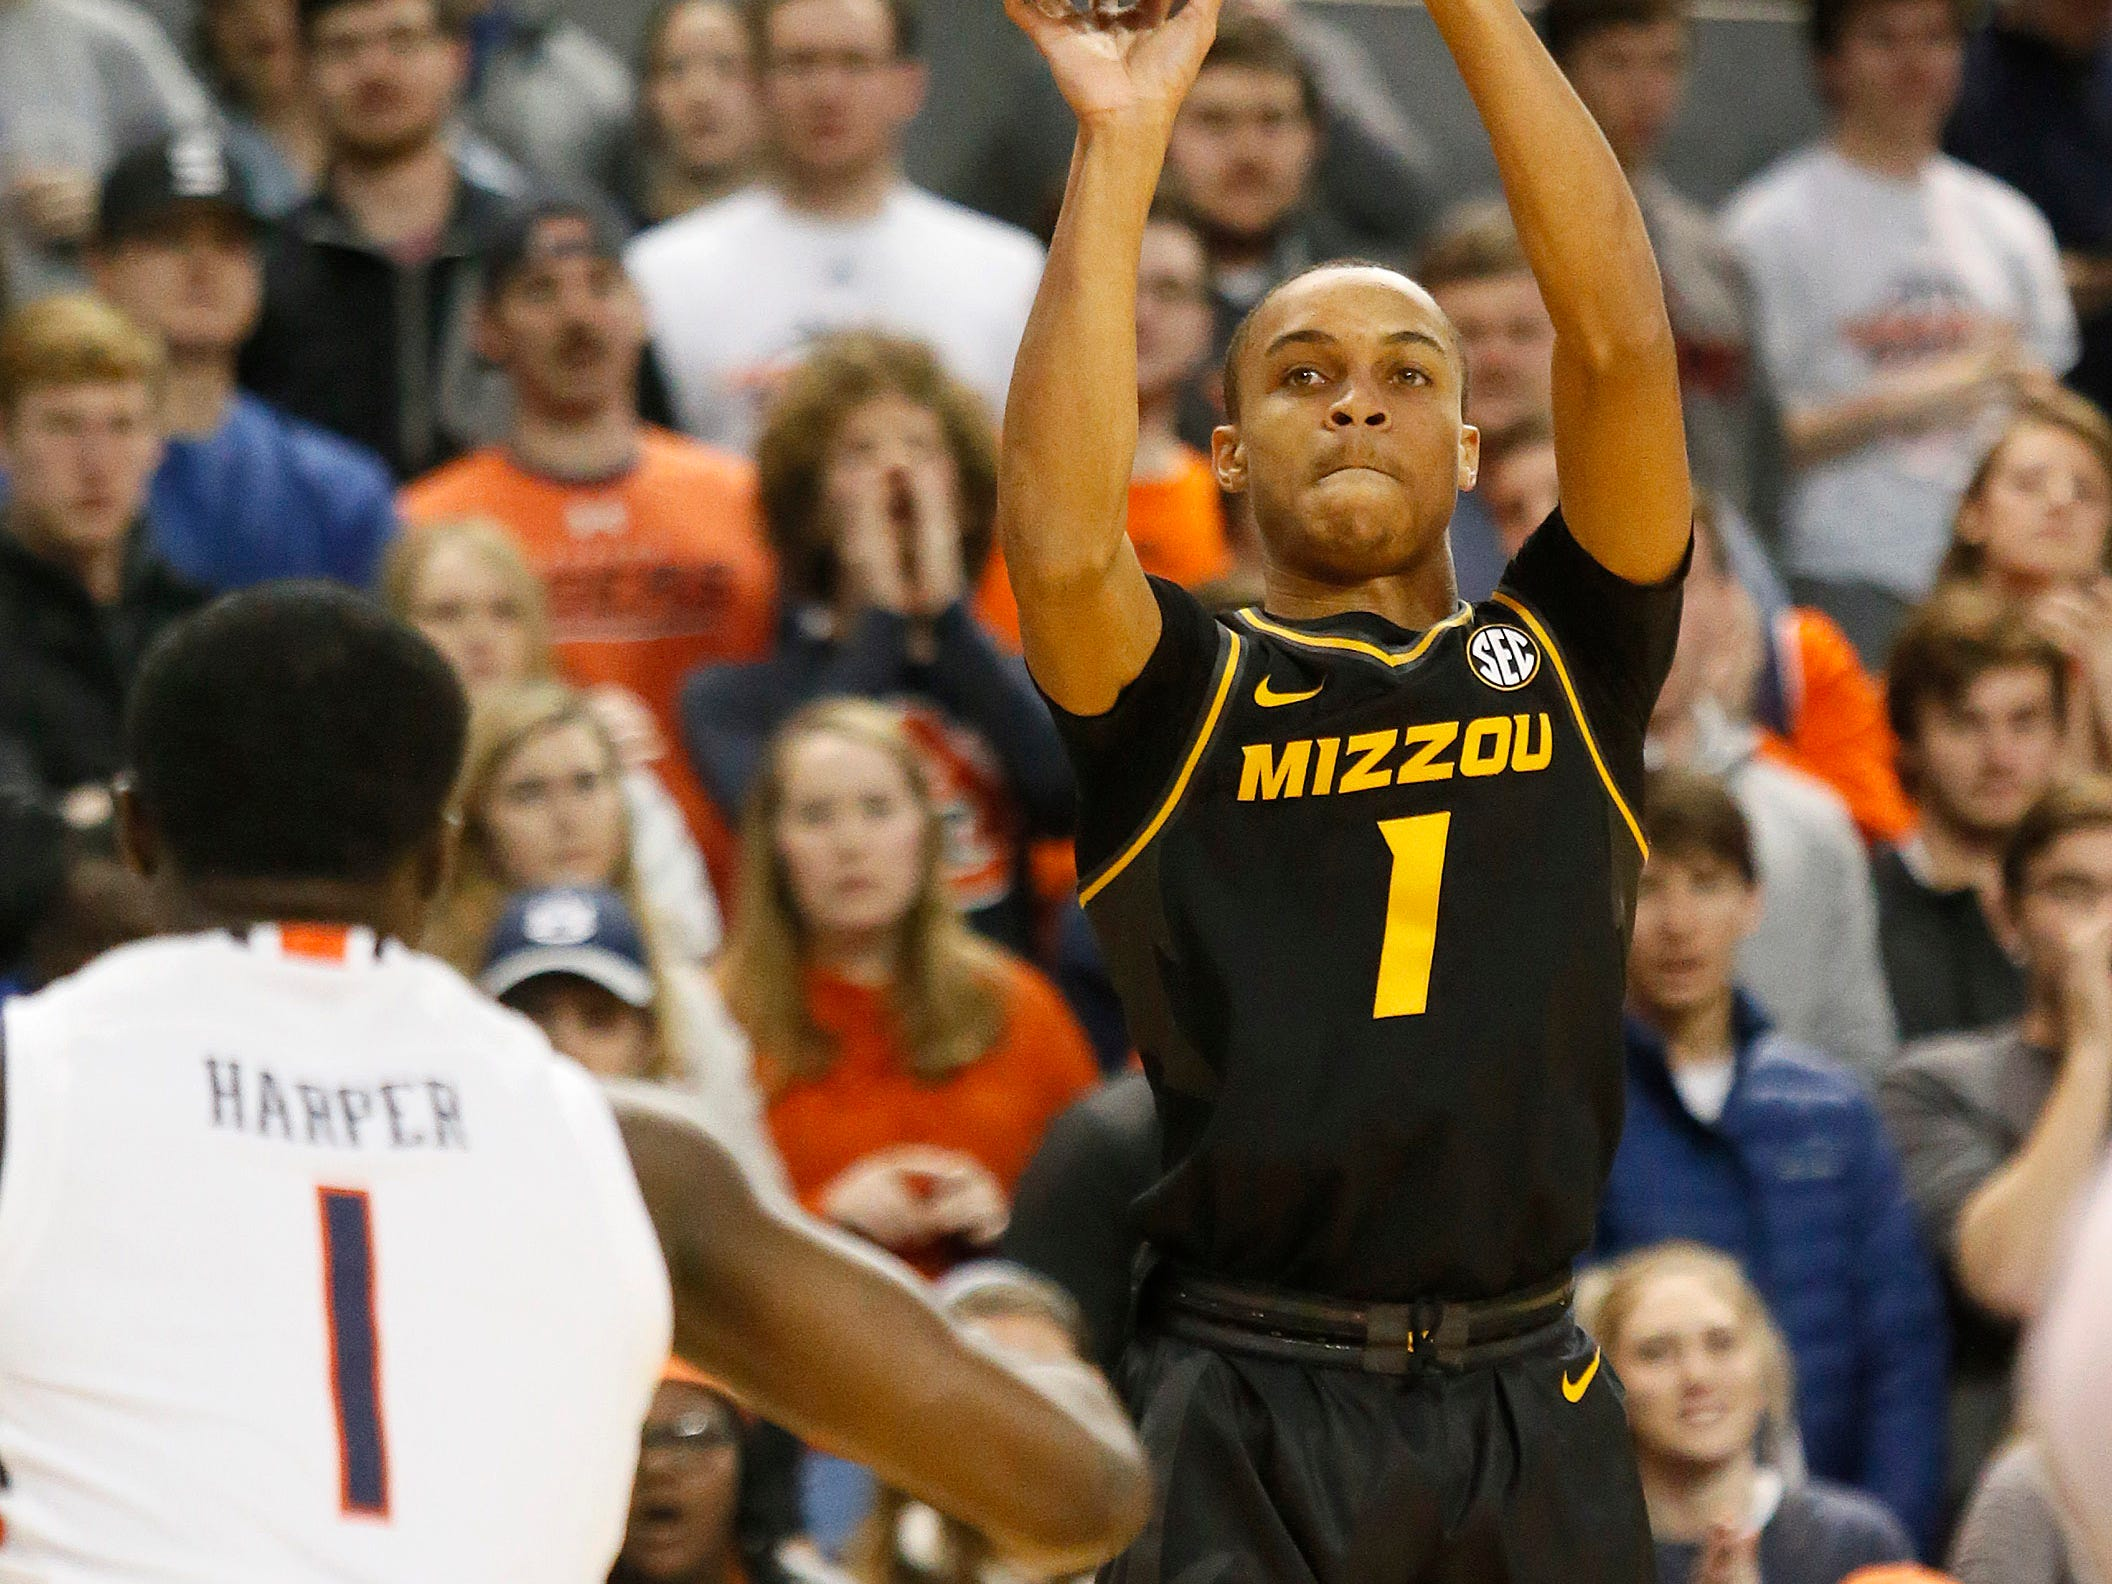 Jan 30, 2019; Auburn, AL, USA; Missouri Tigers guard Xavier Pinson (1) shoots against the Auburn Tigers during the first half at Auburn Arena. Mandatory Credit: John Reed-USA TODAY Sports